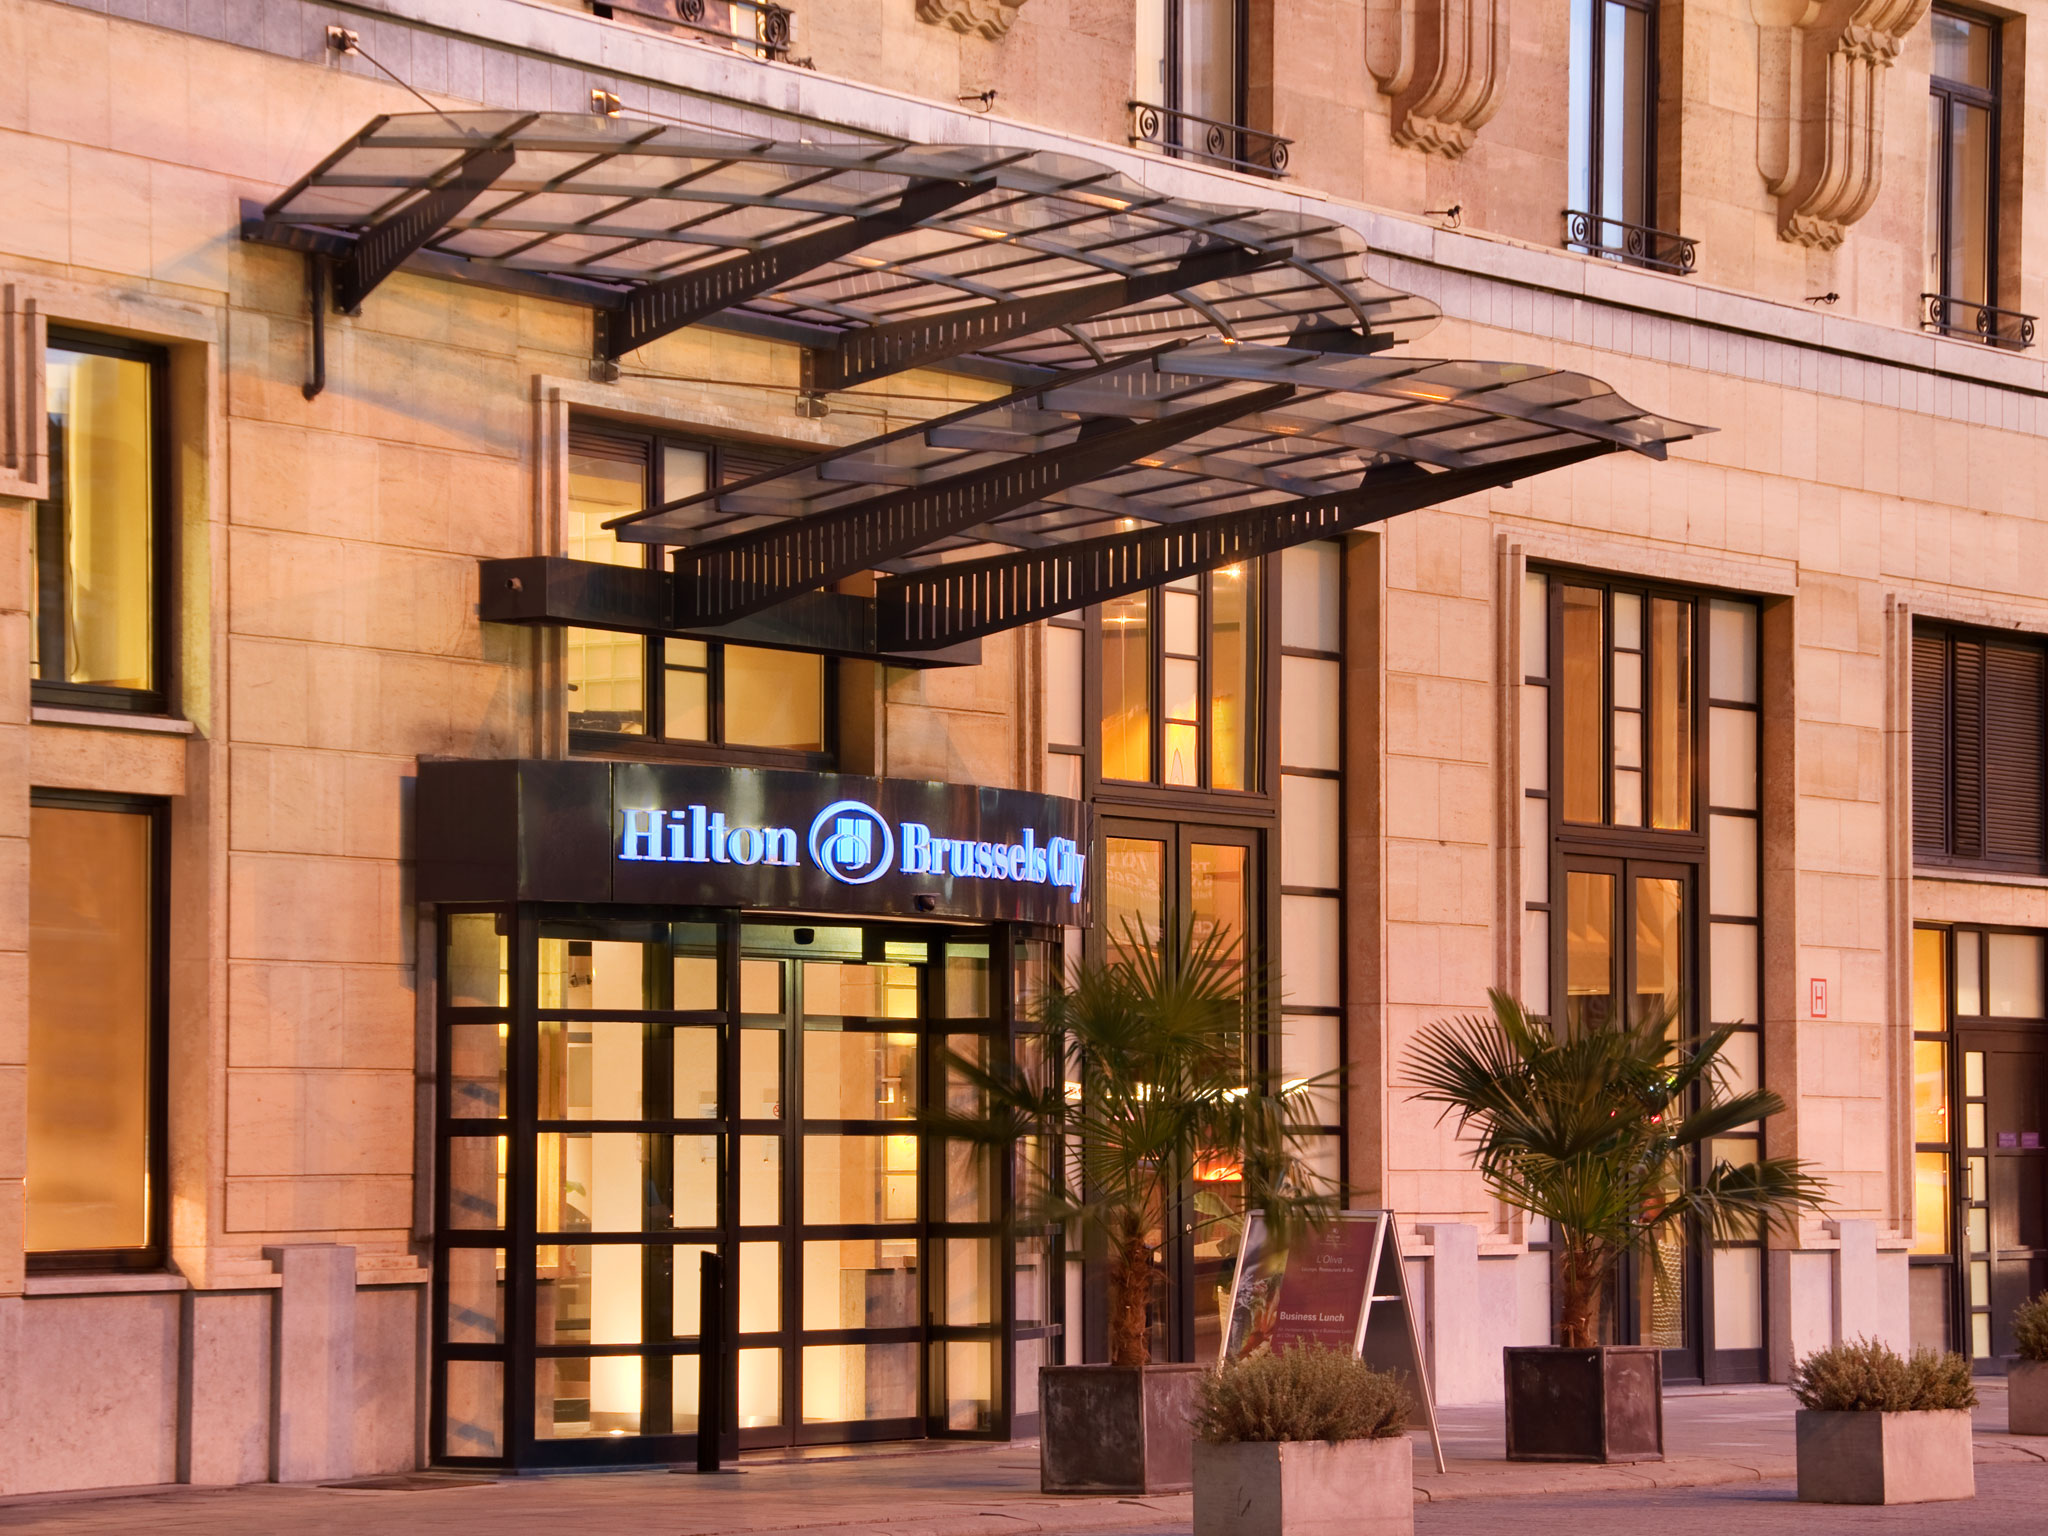 TERMINATED_1Nov2019_Hilton Brussels City